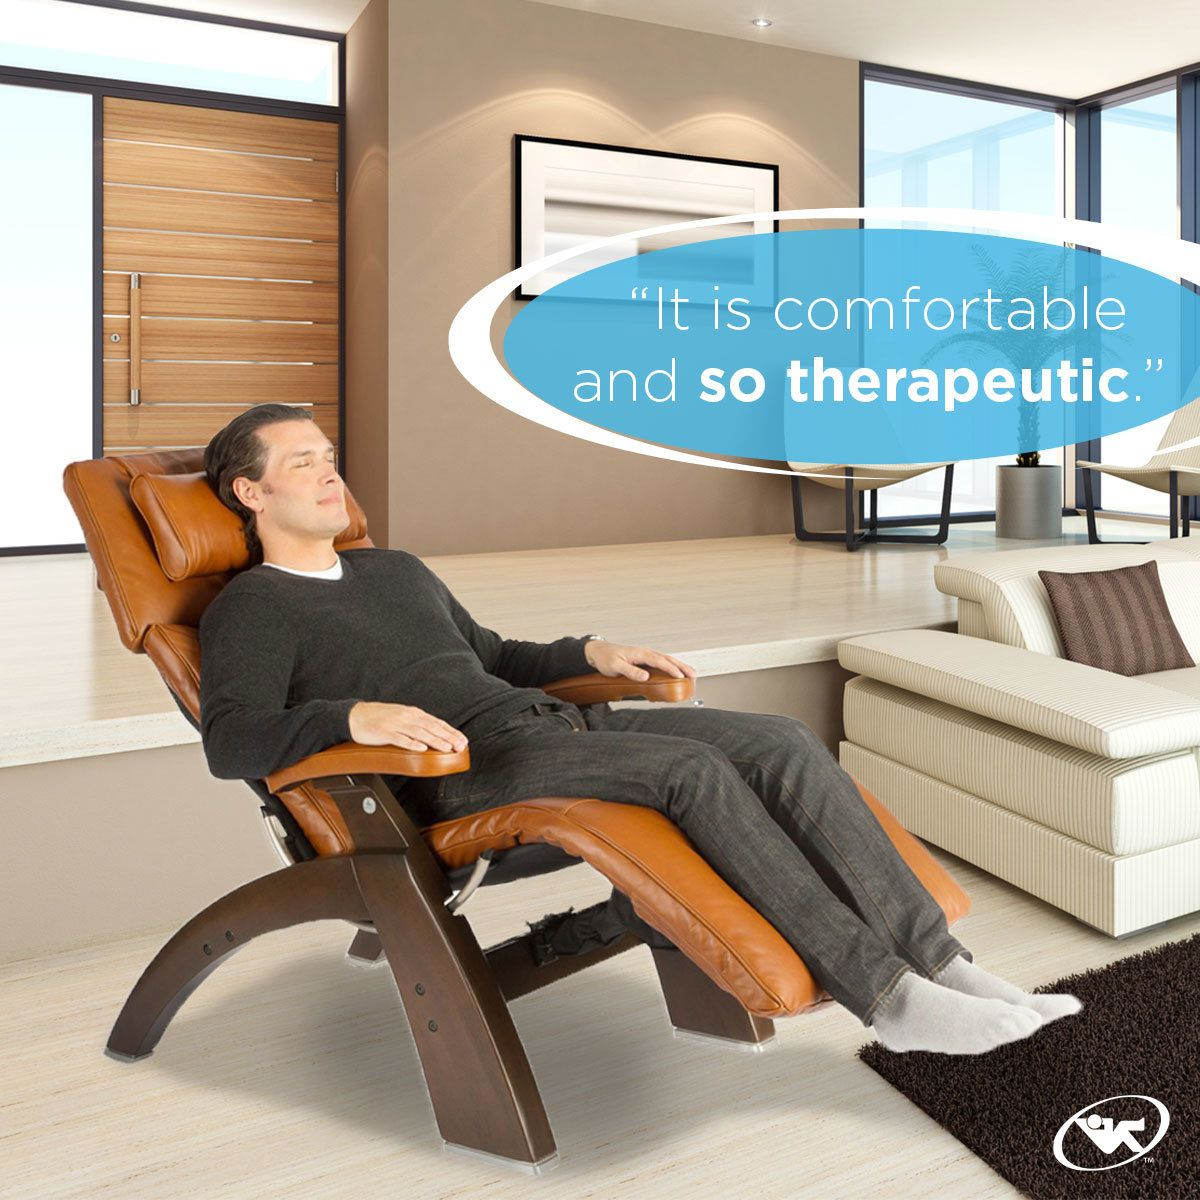 Have you tried our perfect chair relieve pressure on your